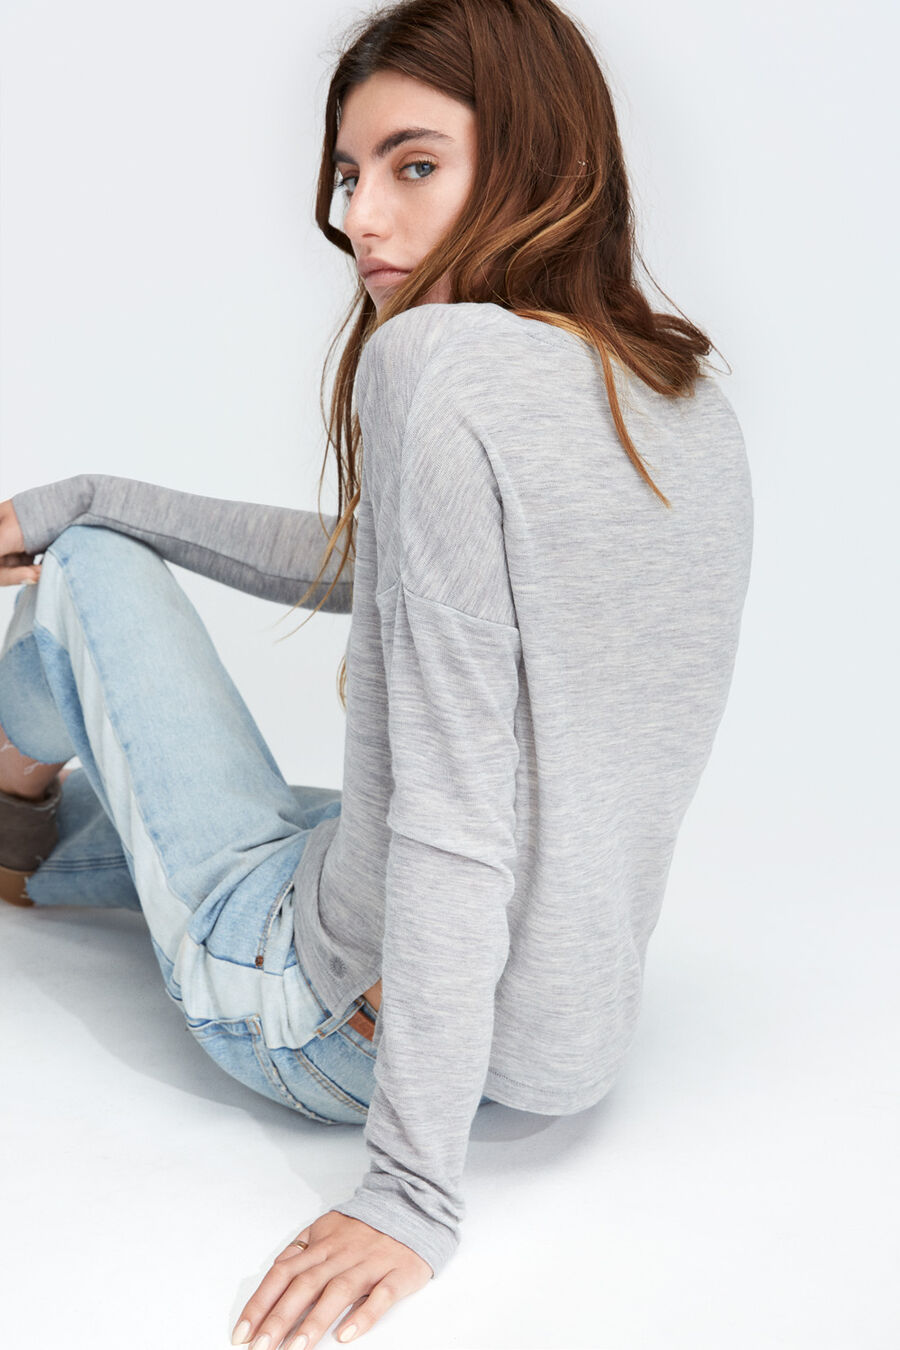 Jersey Knit Long Sleeve Tee - Image 3 of 3